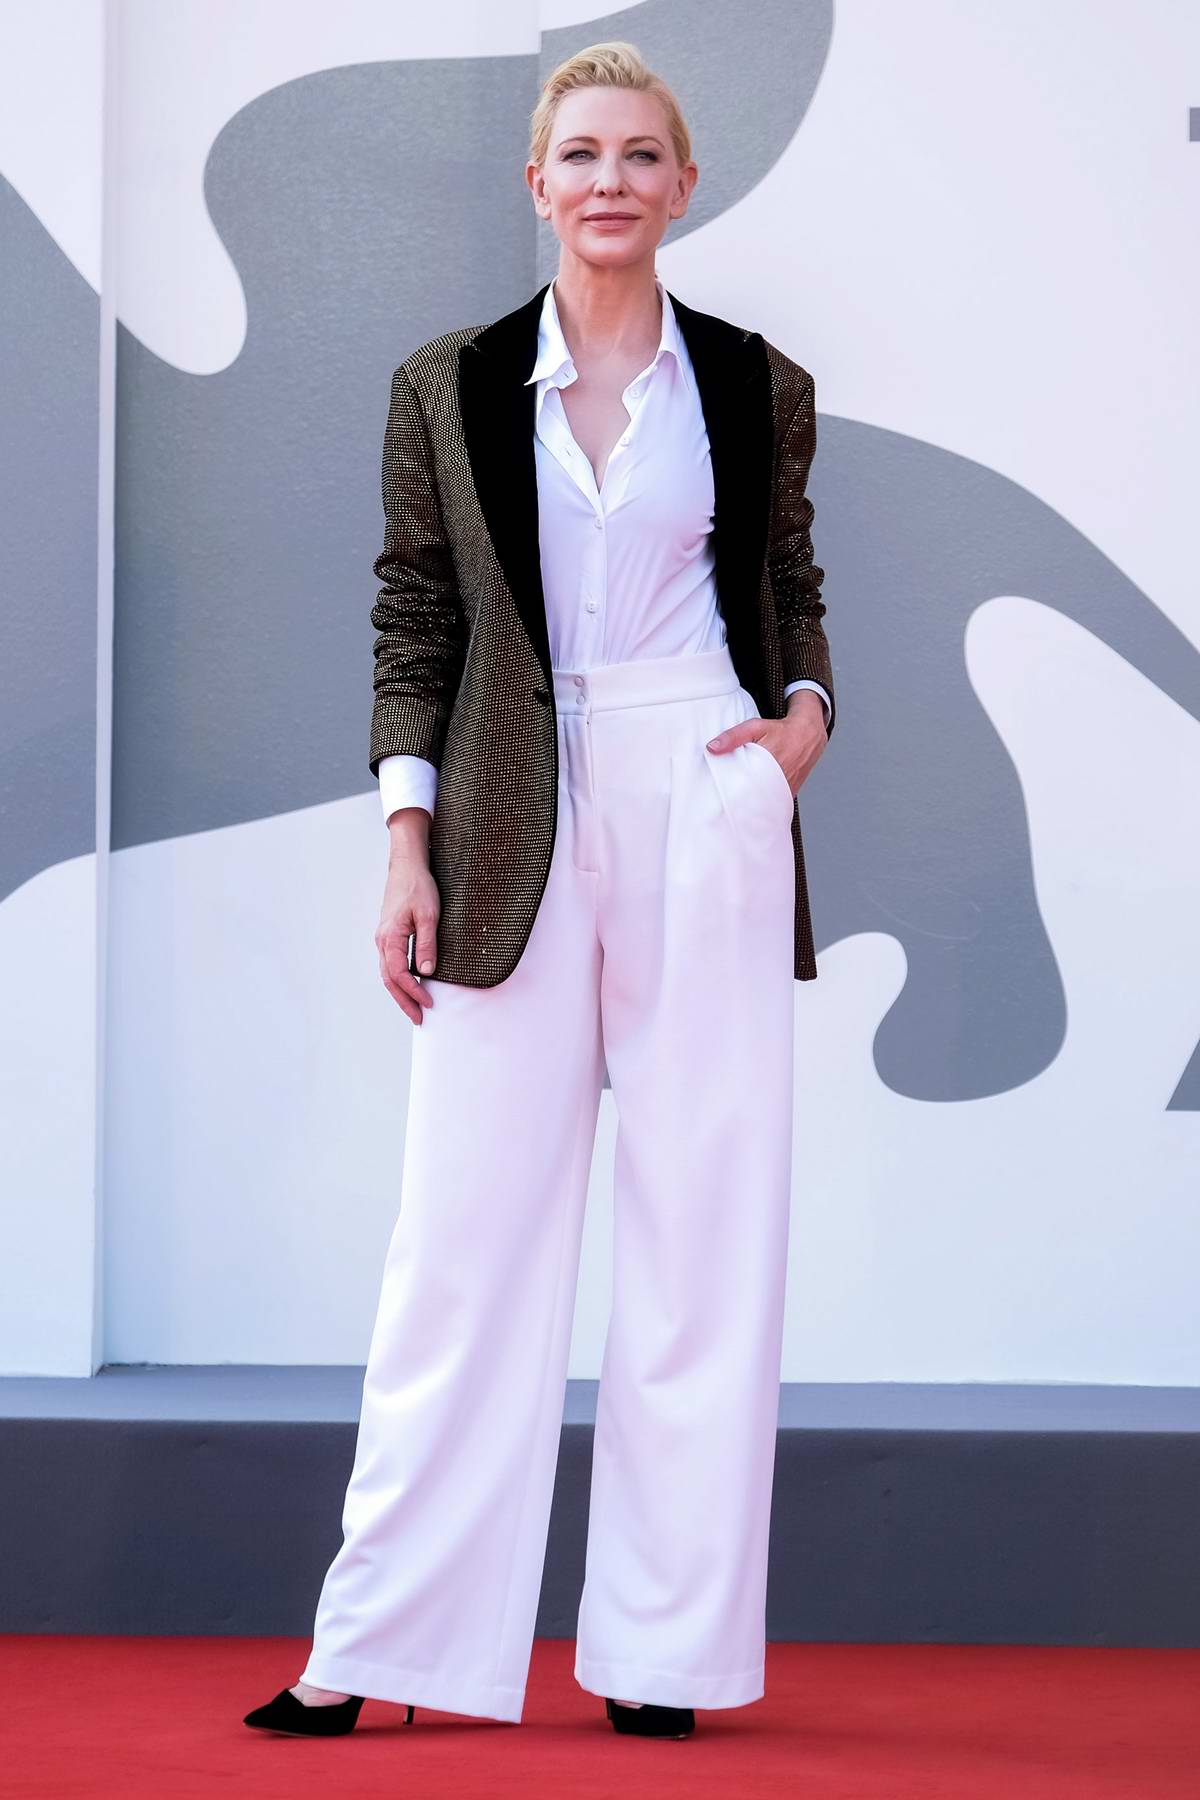 Cate Blanchett attends the Premiere of 'Khorshid' during the 77th Venice Film Festival in Venice, Italy